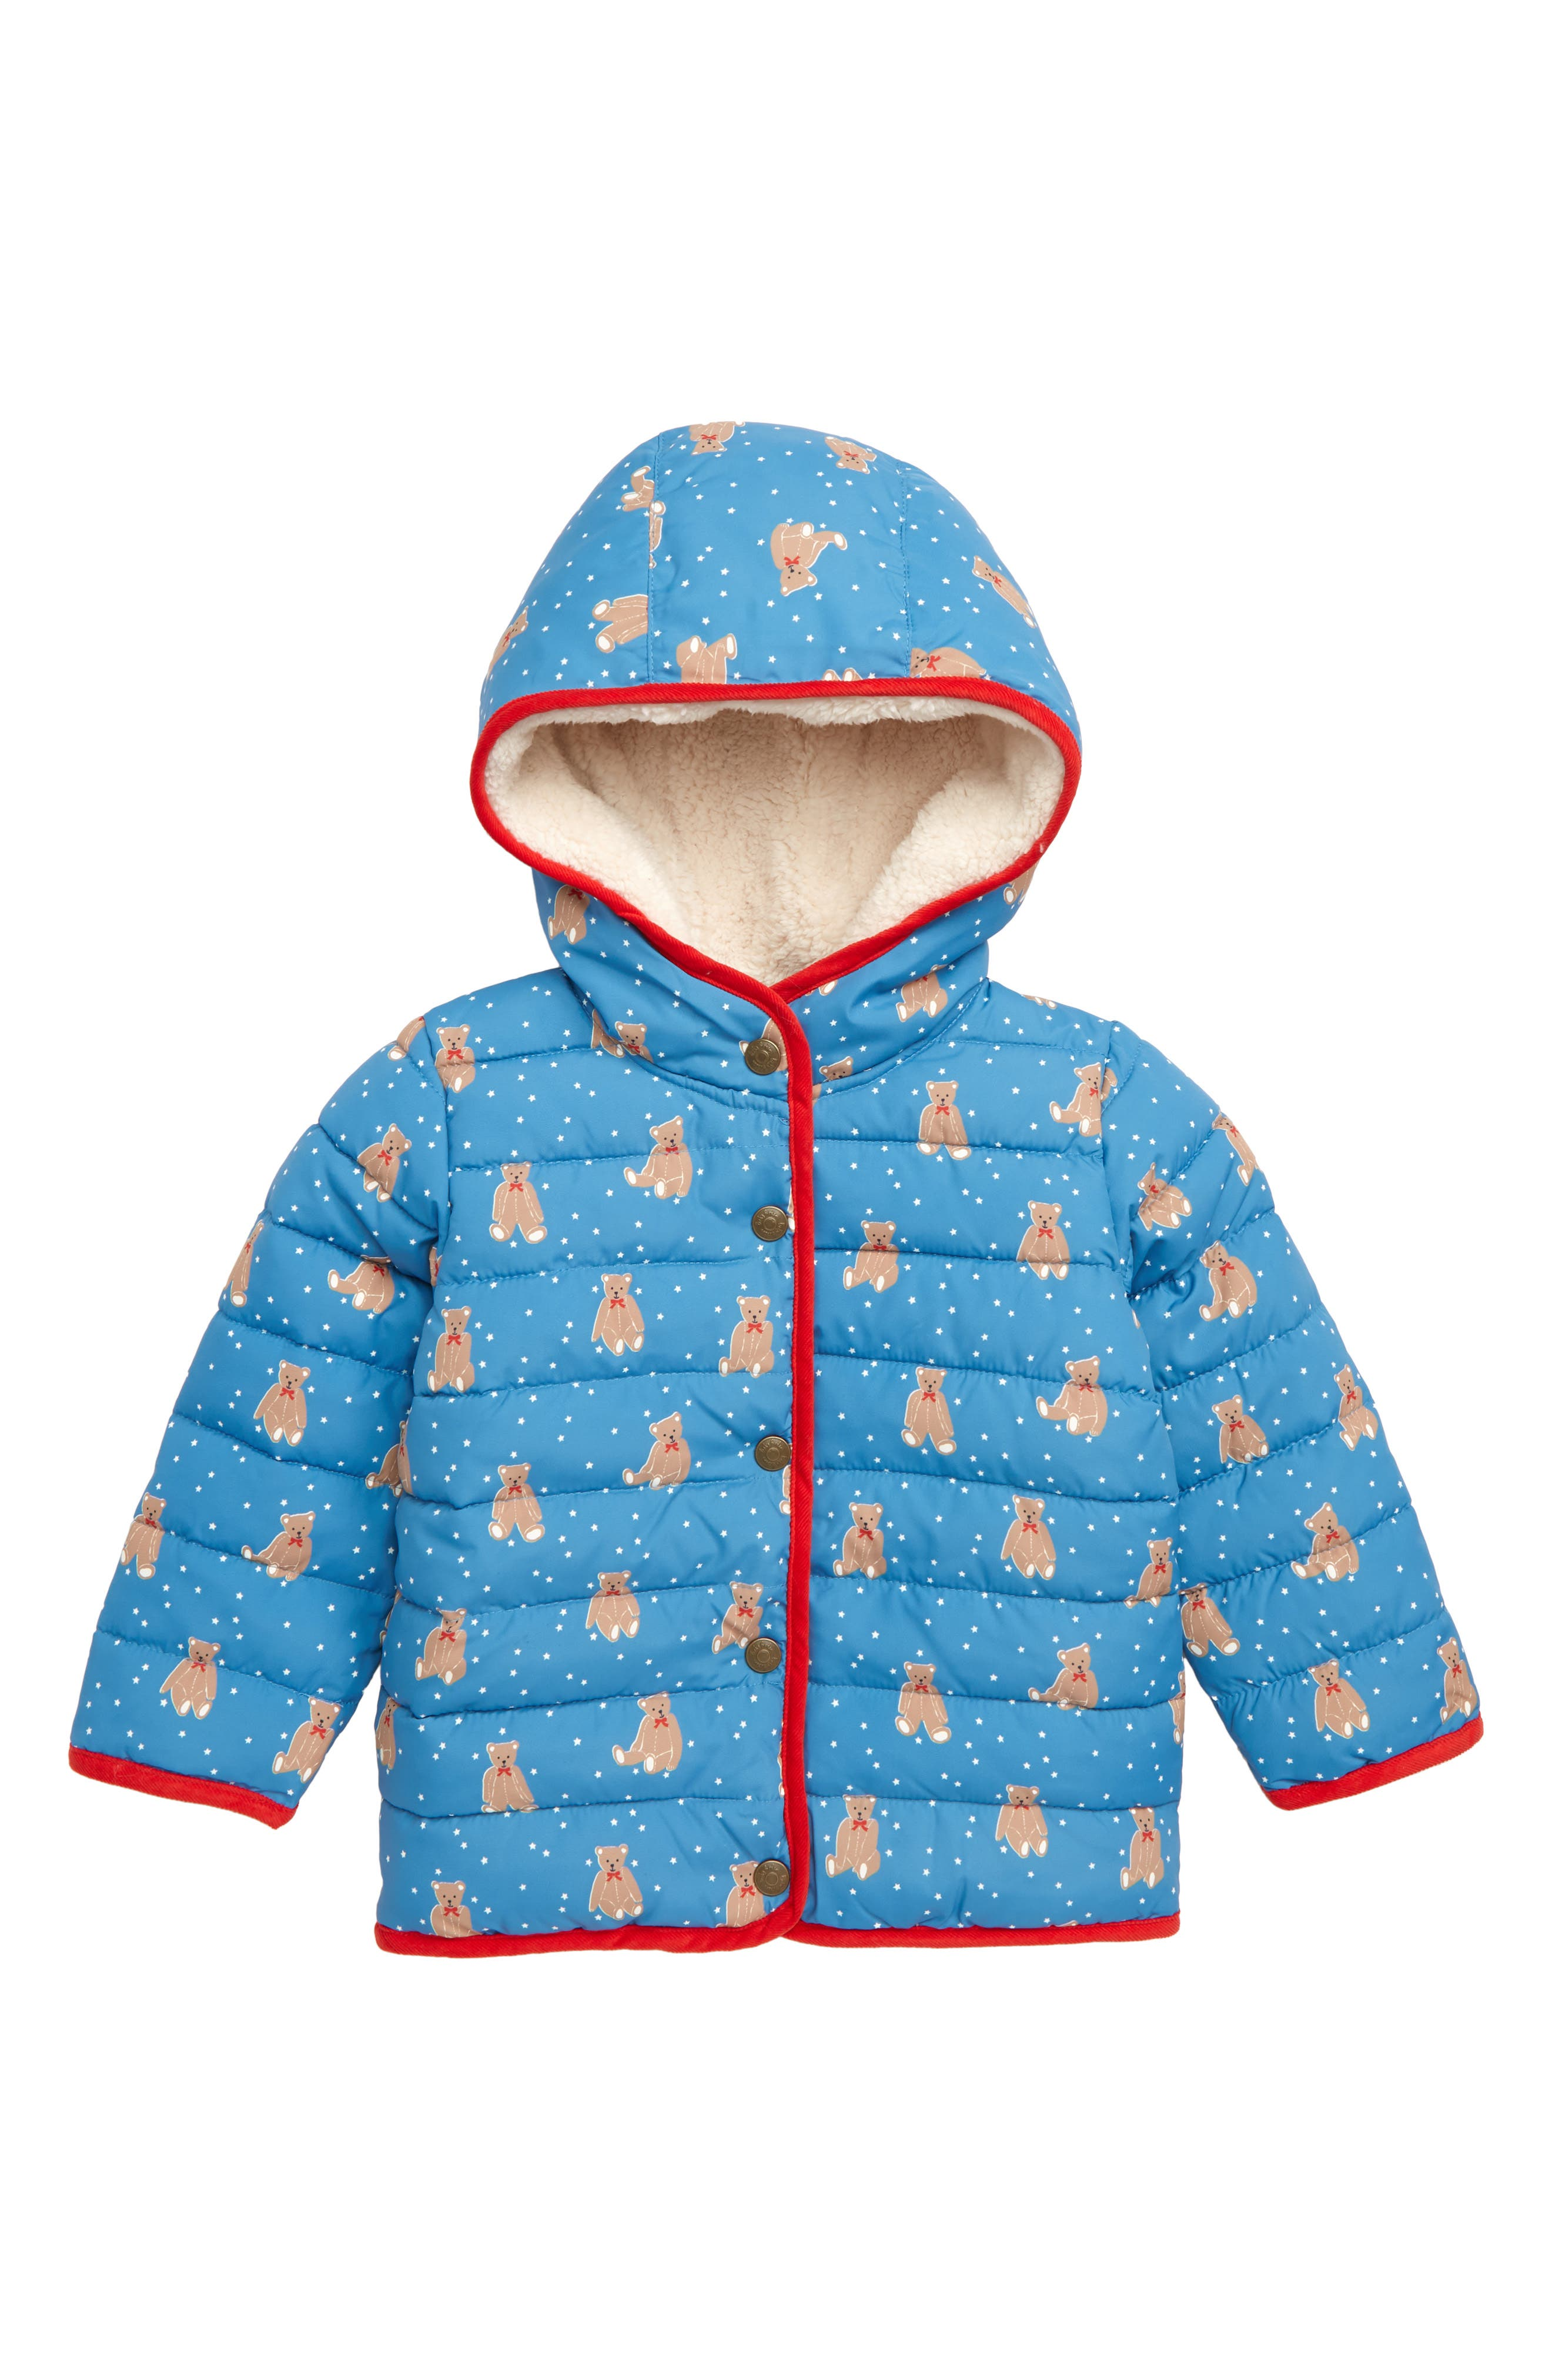 MINI BODEN,                             Babysaurus Water Resistant Quilted Puffer Coat,                             Main thumbnail 1, color,                             BLU AZURE BLUE BABY BEARS